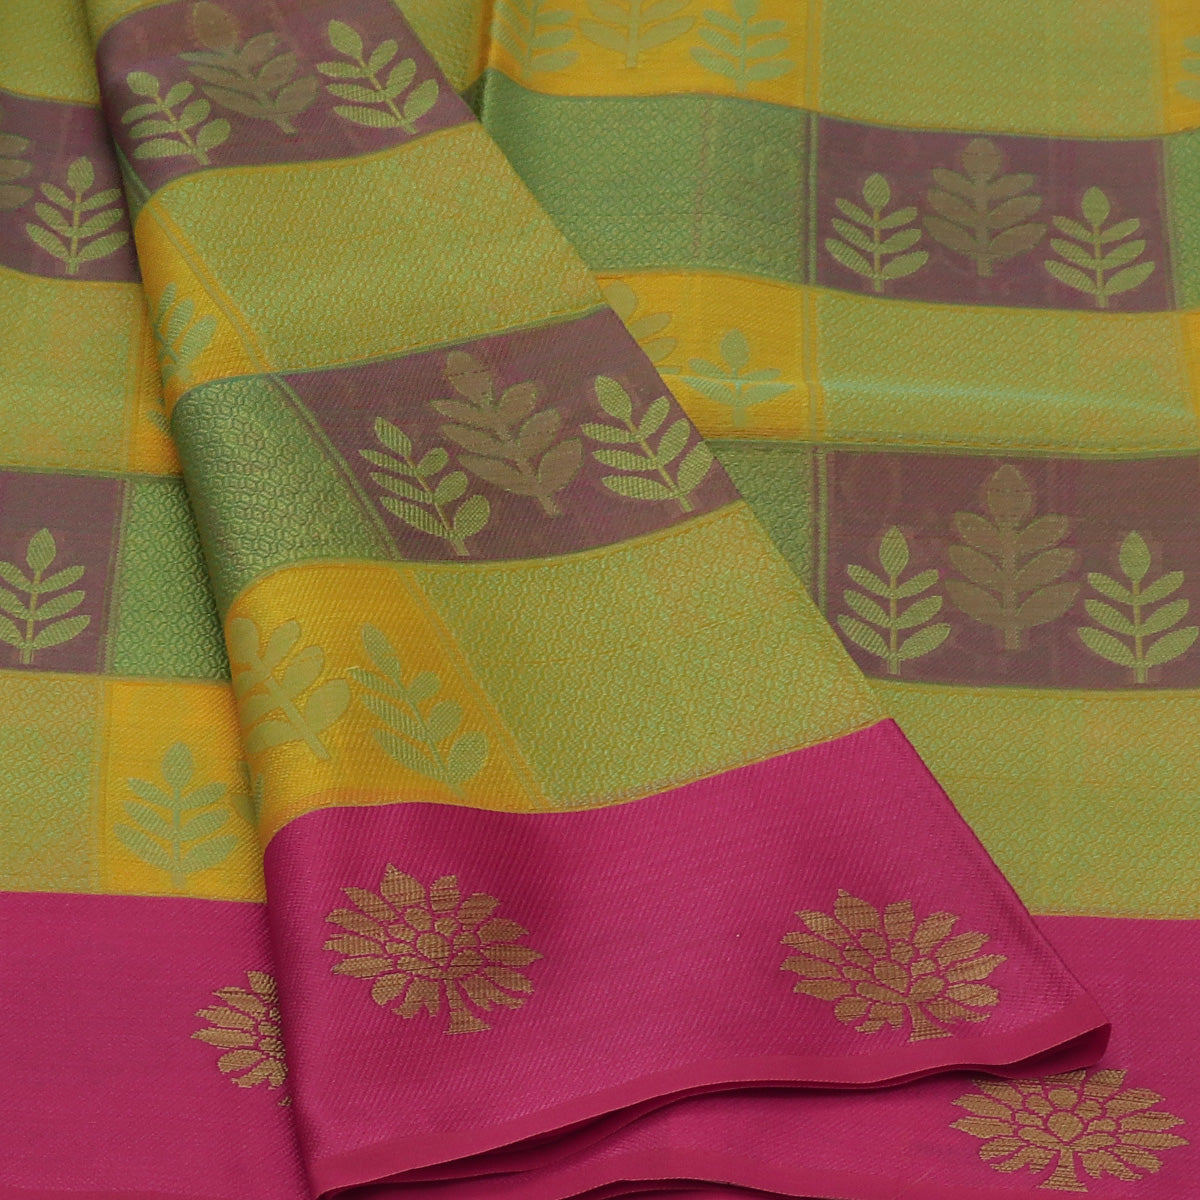 Banarasi Organza Saree Mint Green and Light Yellow Checked with Pink and Flower Zari border